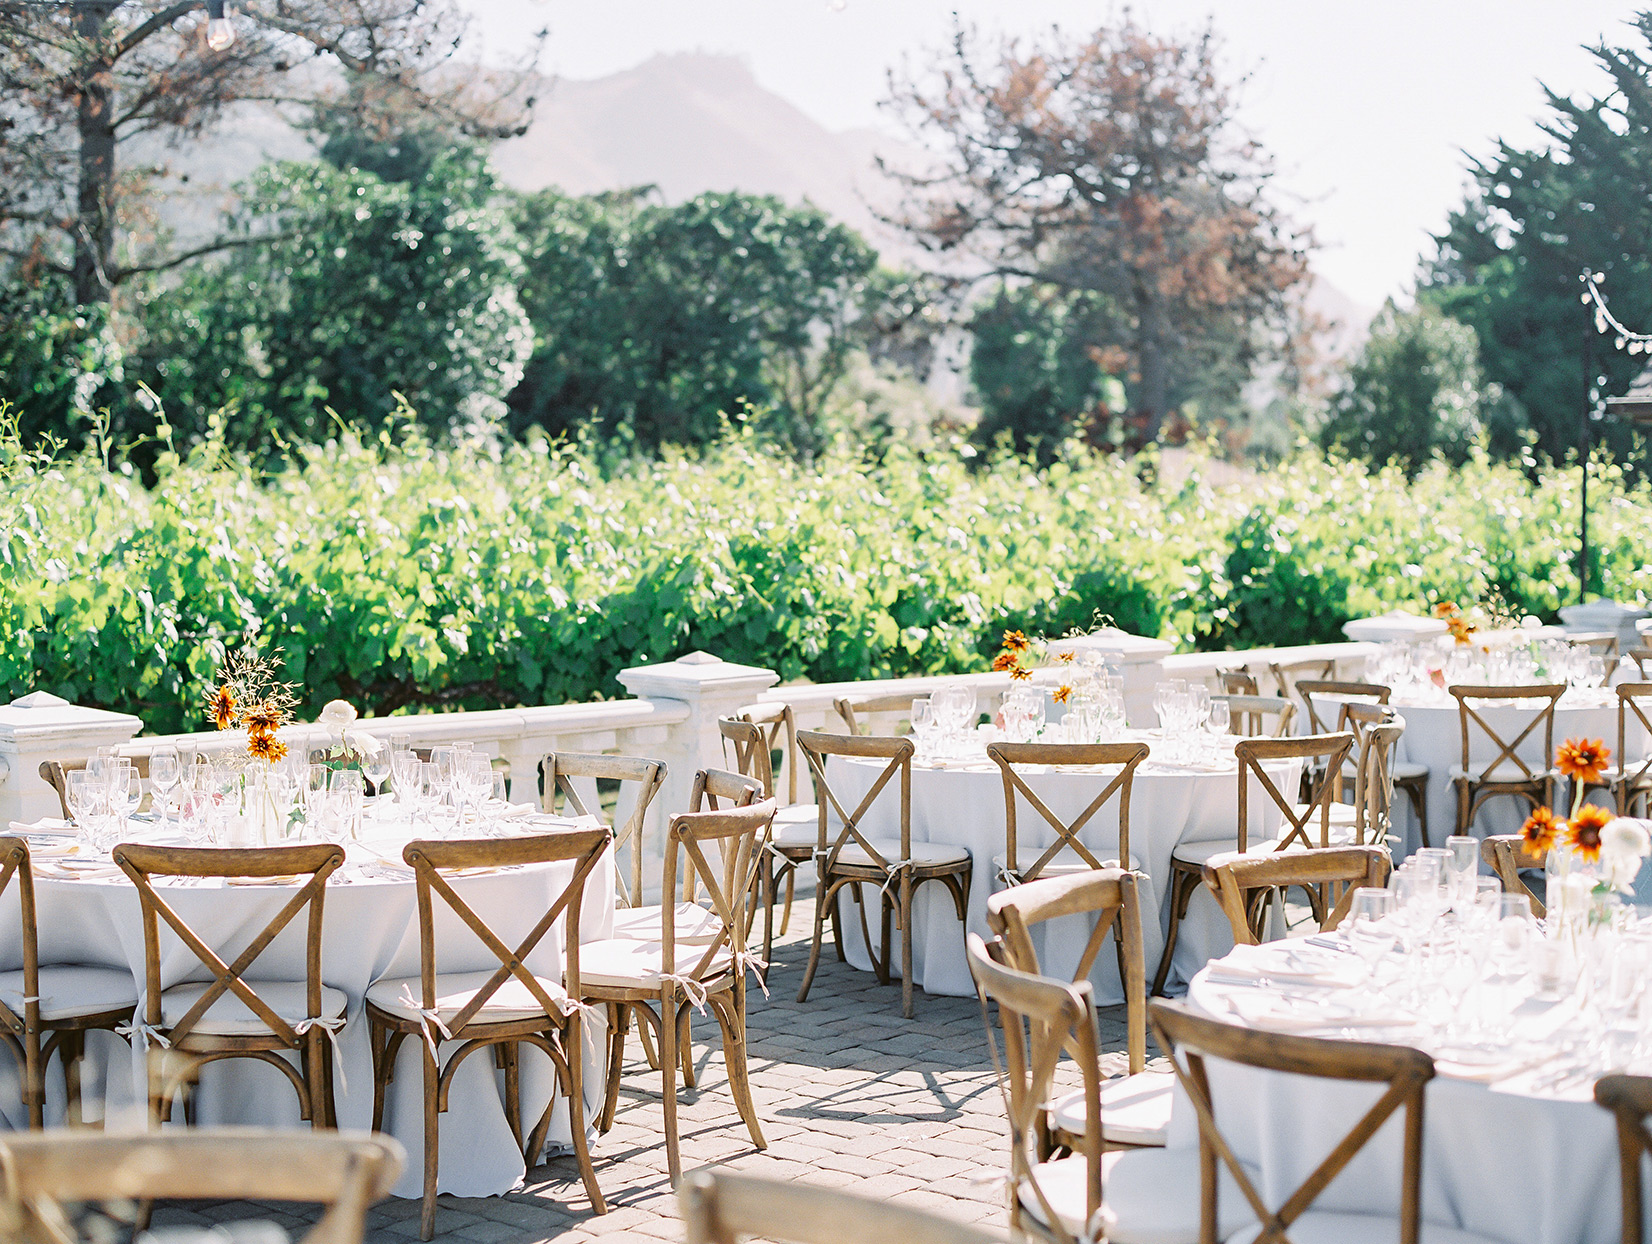 white tables with wooden chairs set up on patio